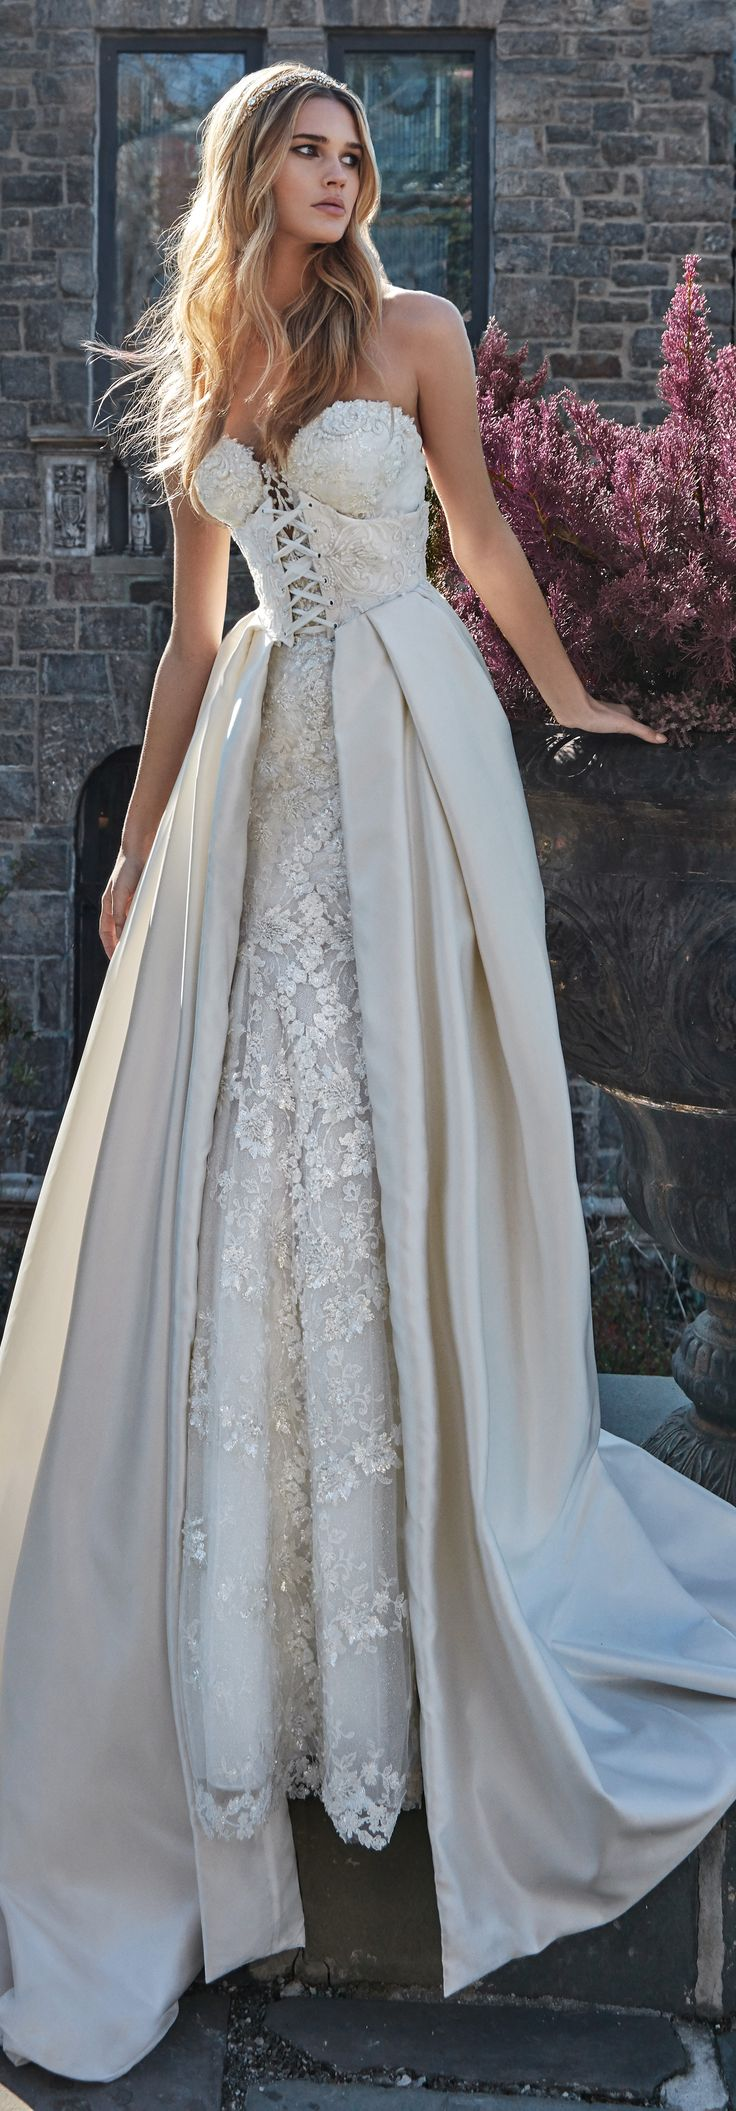 Couture Wedding Dress by Galia Lahav